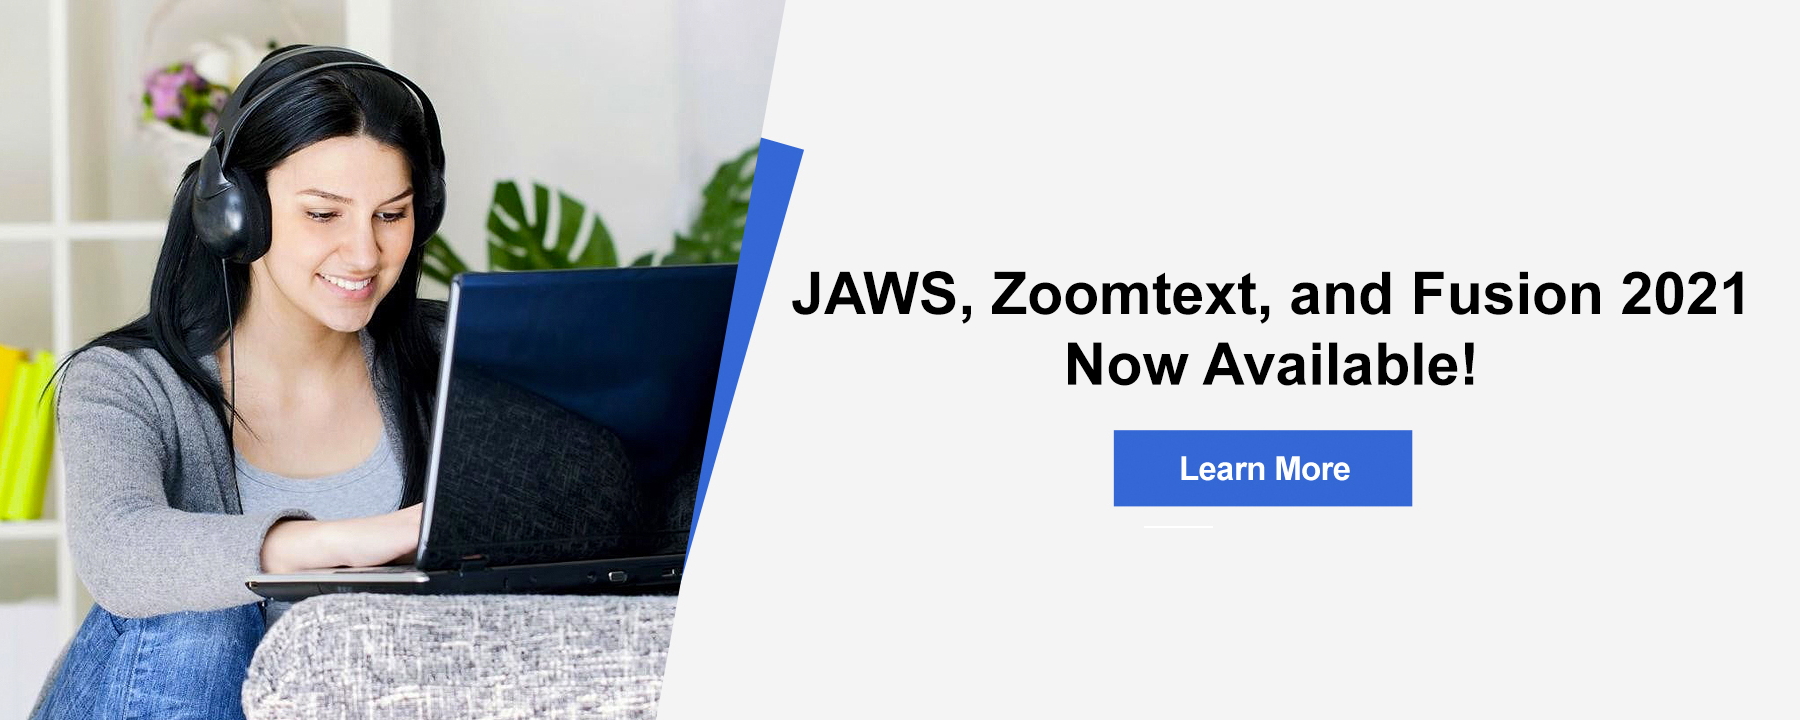 JAWS, Zoomtext, and Fusion 2021 Now Available. Learn more.